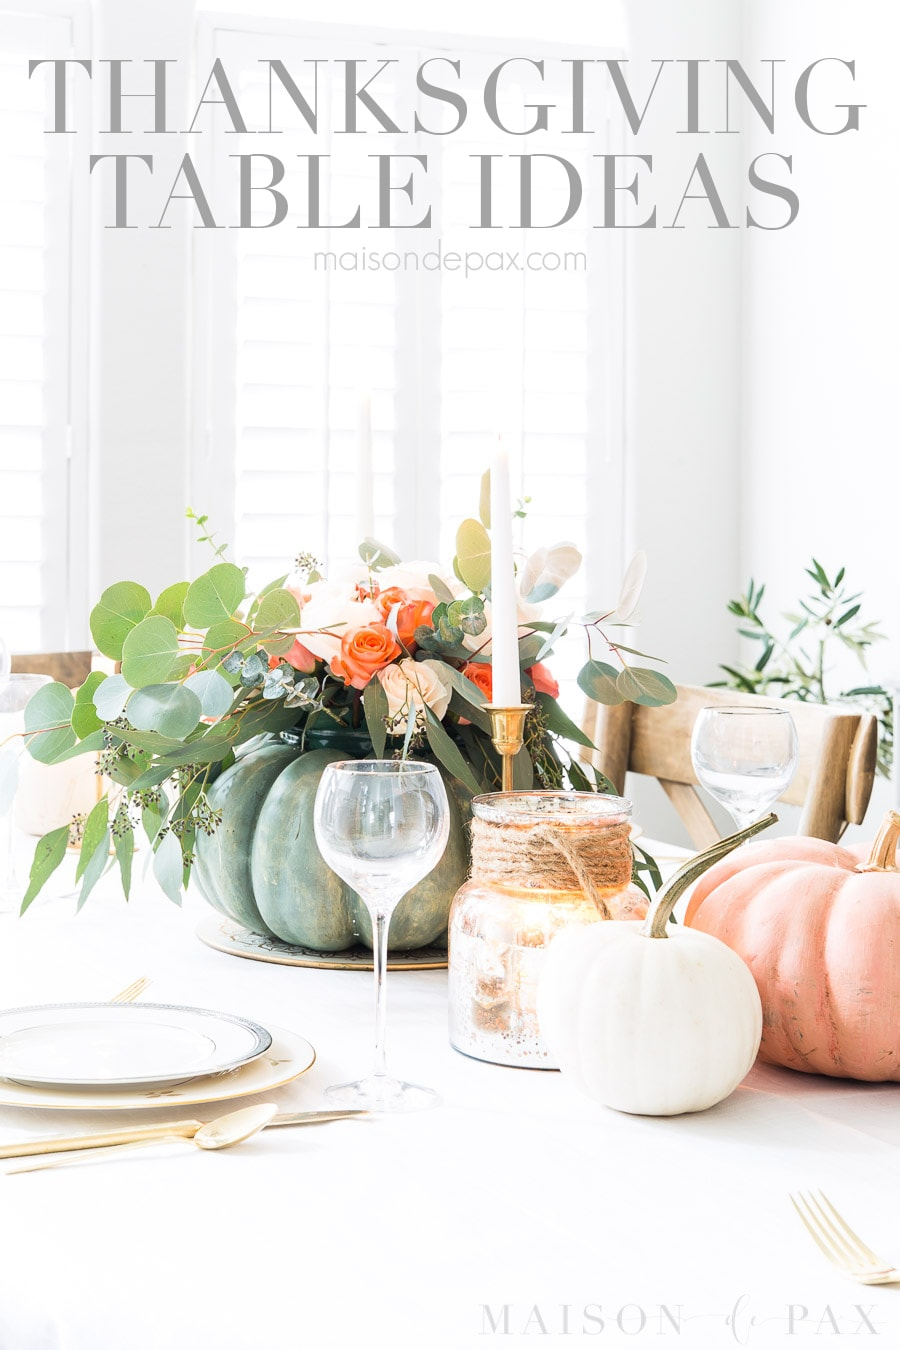 pumpkin floral centerpiece with Thanksgiving Table Ideas written across the image